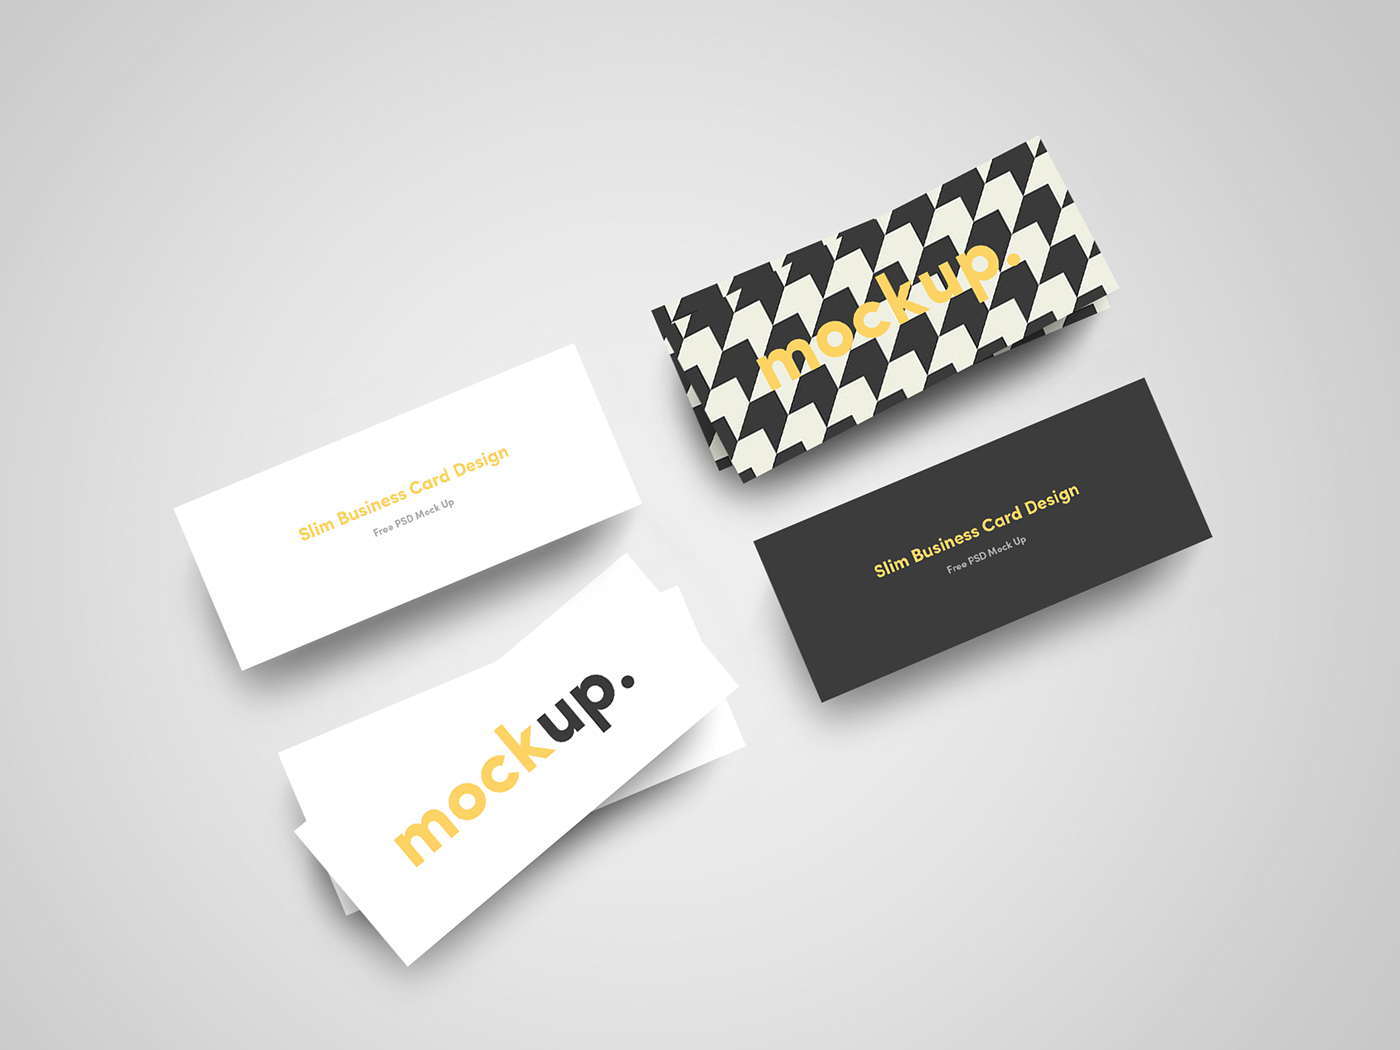 slim business cards - Pertamini.co